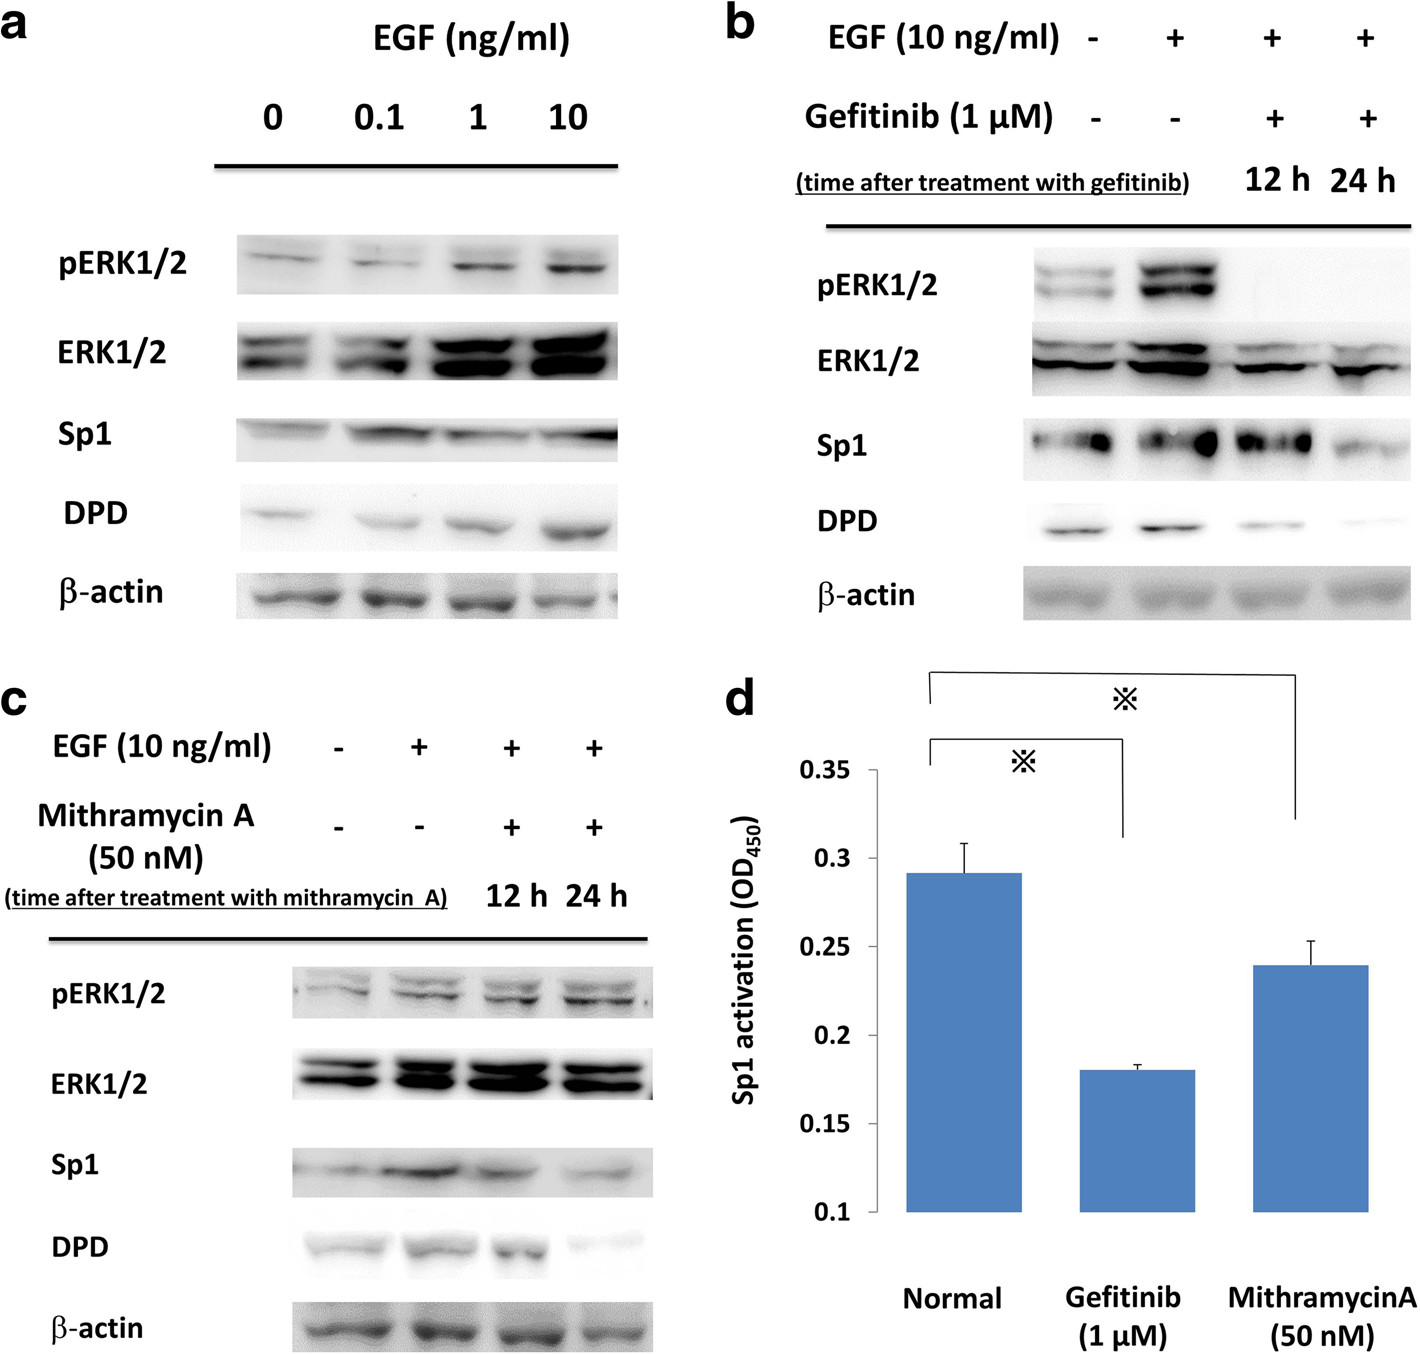 a PC9 cells were incubated with various concentrations of EGF, and whole cell lysates were extracted and were examined by immunoblot analysis. b, c. Effects of gefitinib and mithramycin A on ERK, Sp1, and DPD in immunoblot analysis. PC9 cells were pretreated with gefitinib (1 μM) or mithramycin A (50 nM) before administration of 10 ng/ml EGF. After treatment, whole cell lysates were extracted and examined by western blotting. Results are representative of two independent experiments. d PC9 cells were stimulated with inhibitors, and nuclear extracts were prepared to detect the Sp1/DNA interaction by a Trans AM Sp1 kit. The experiment was performed in triplicate. *, <i>p</i>-value < 0.05